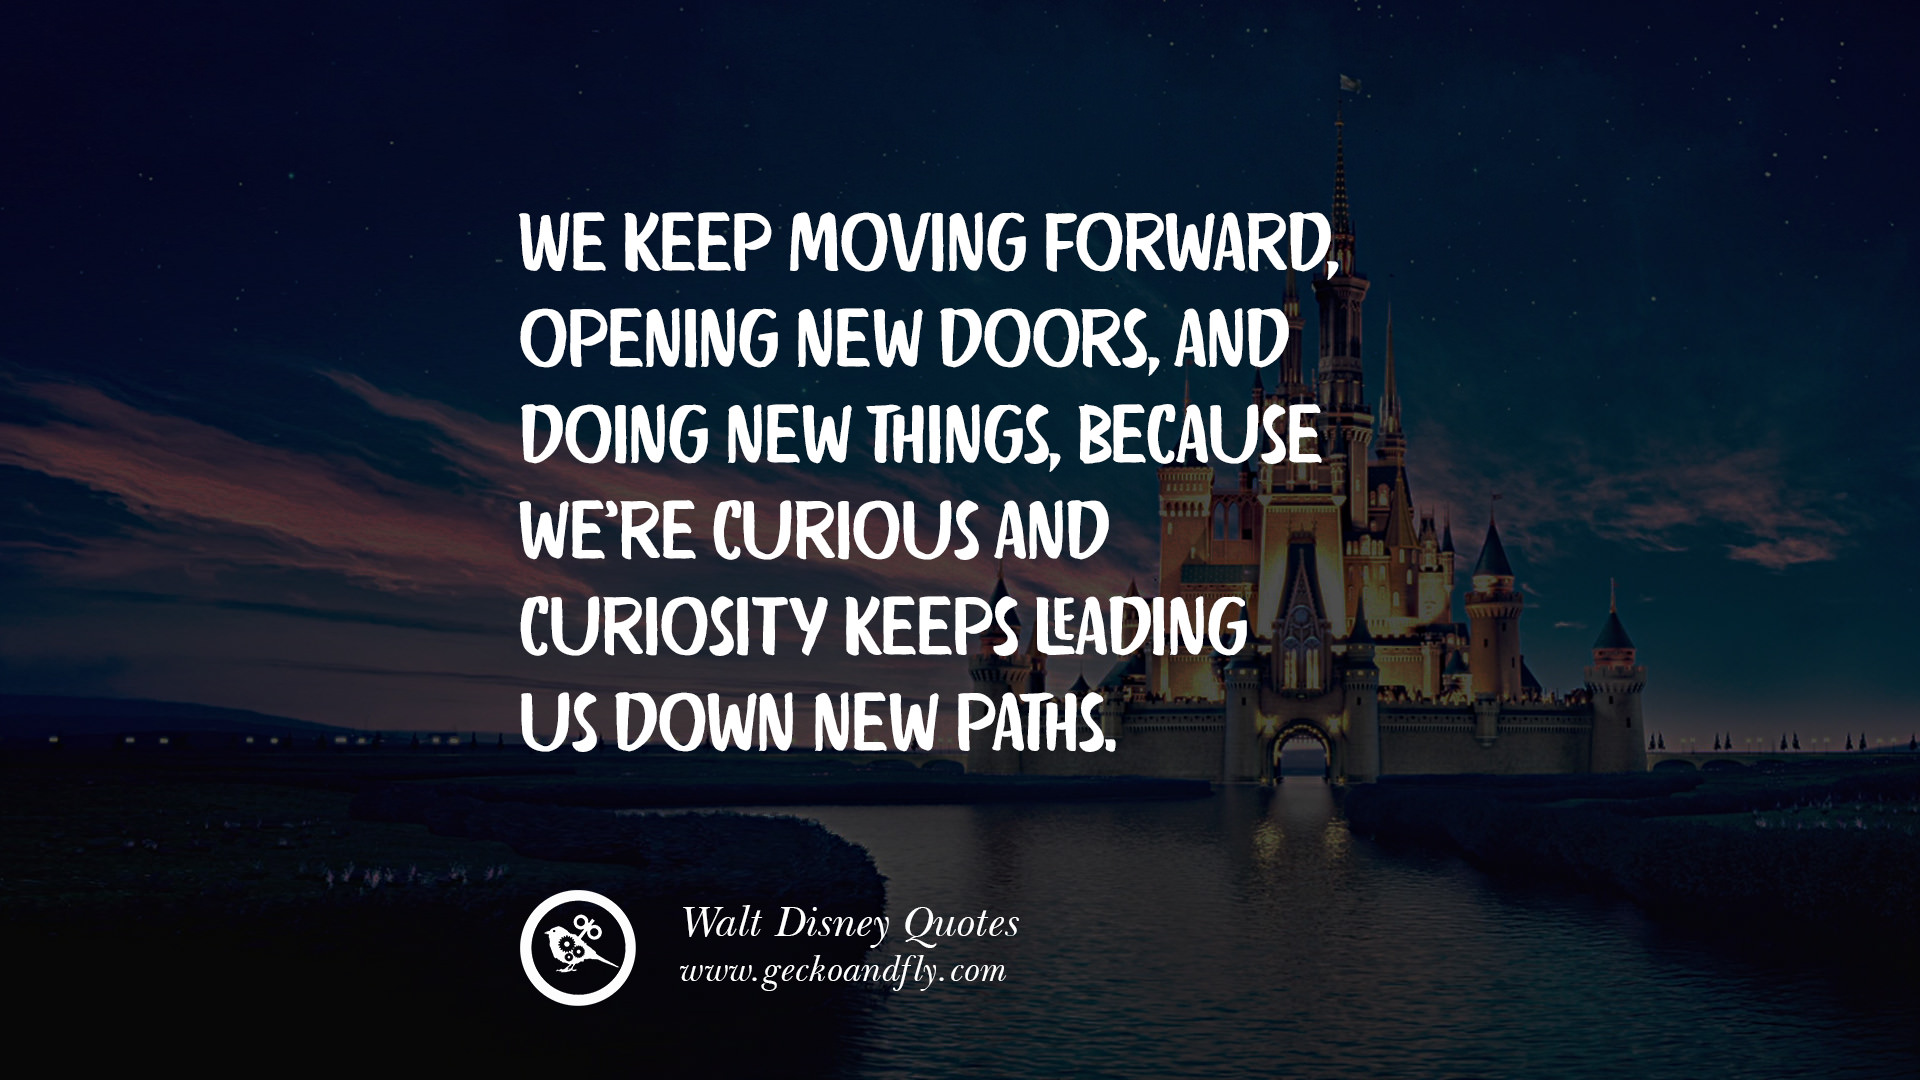 Keep Moving Quotes 12 'keep Moving Forward' Walt Disney Quotes  Geckoandfly 2018